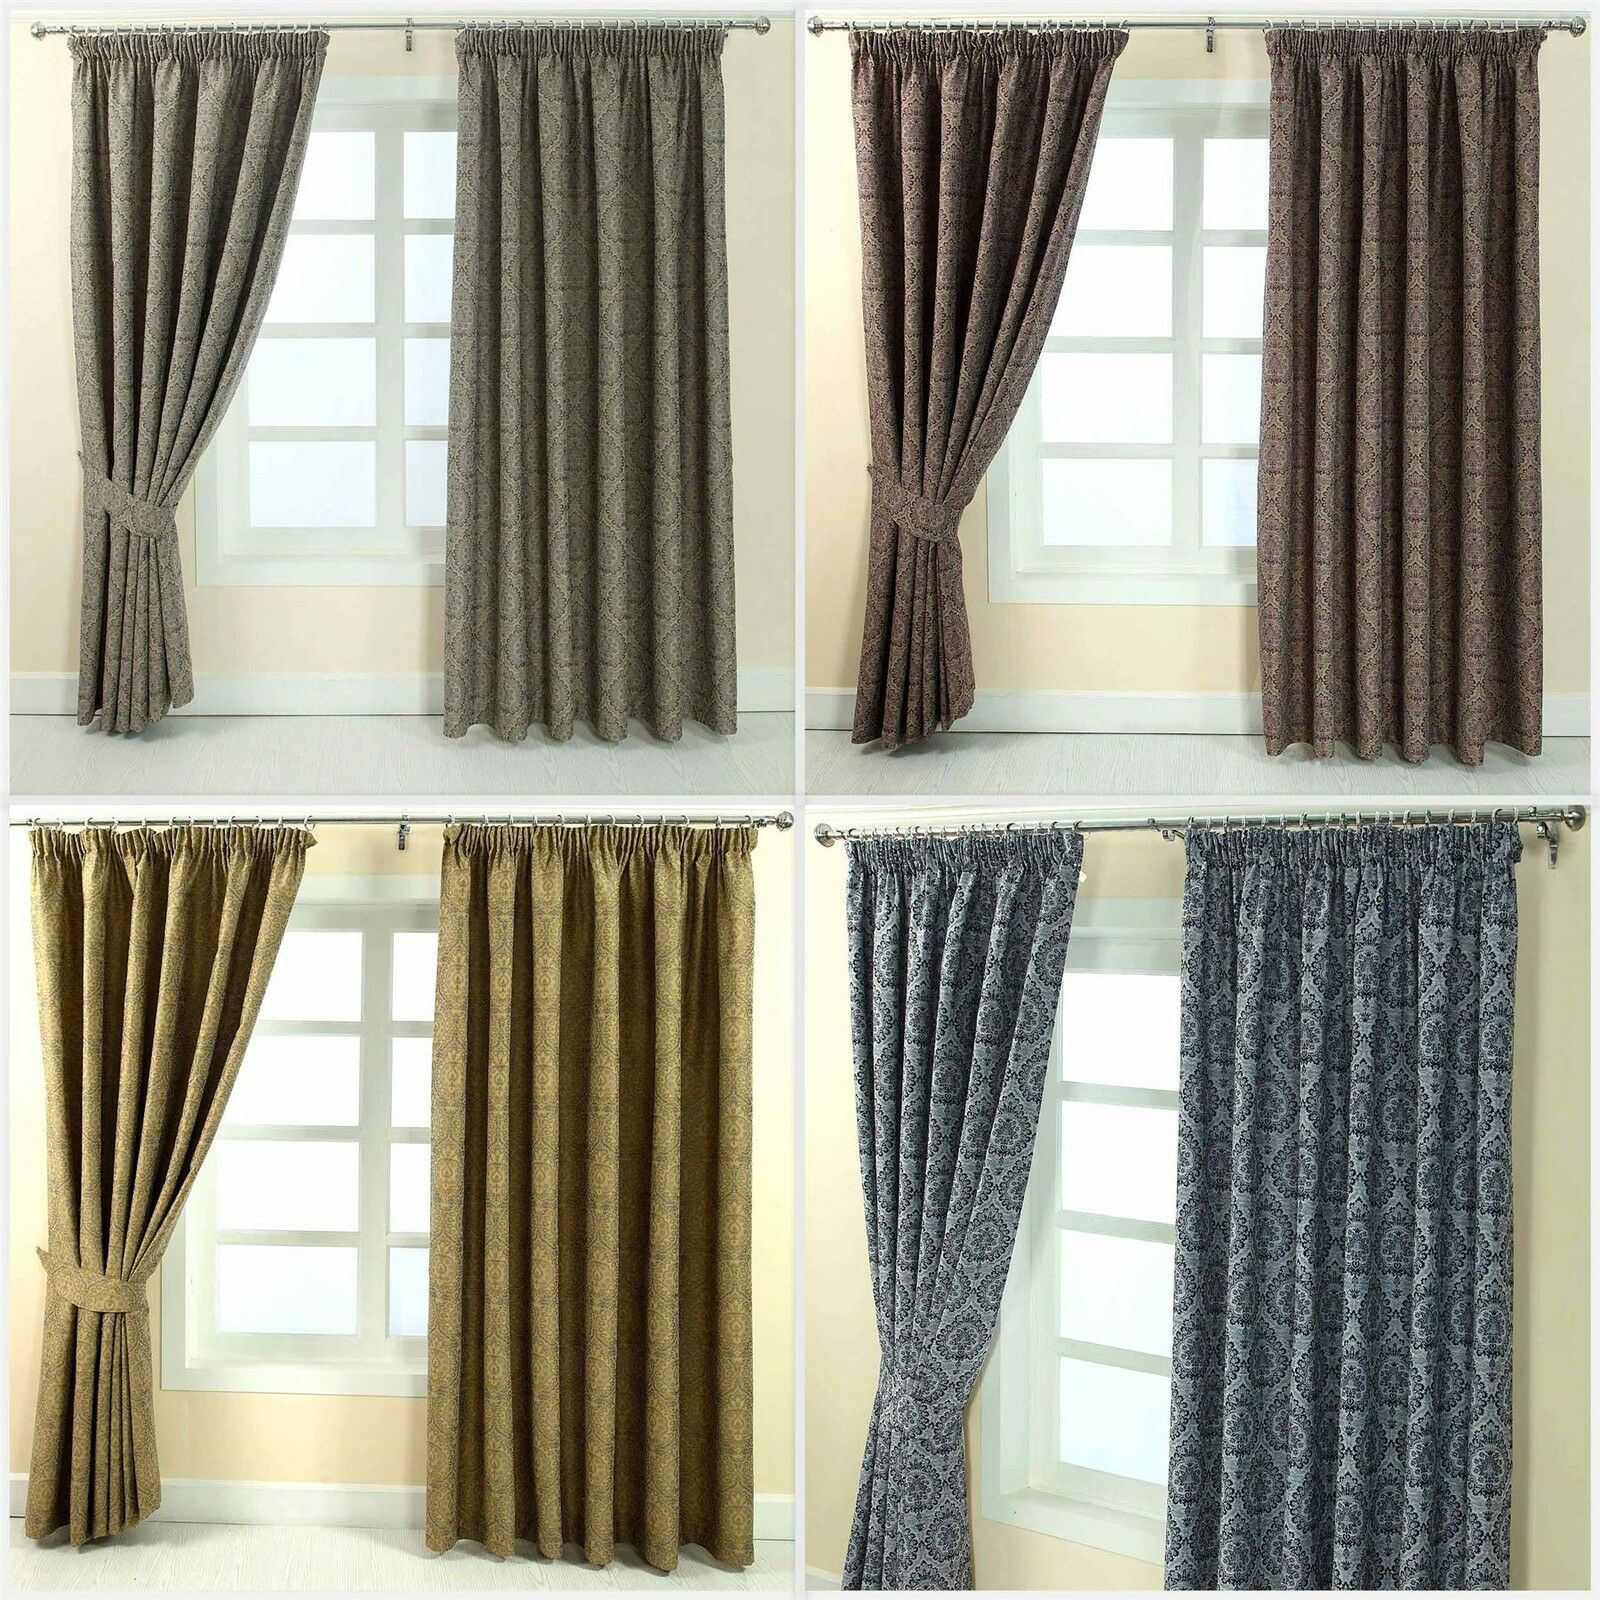 Floral Pencil Pleat Fully Lined Jacquard Damask Curtains